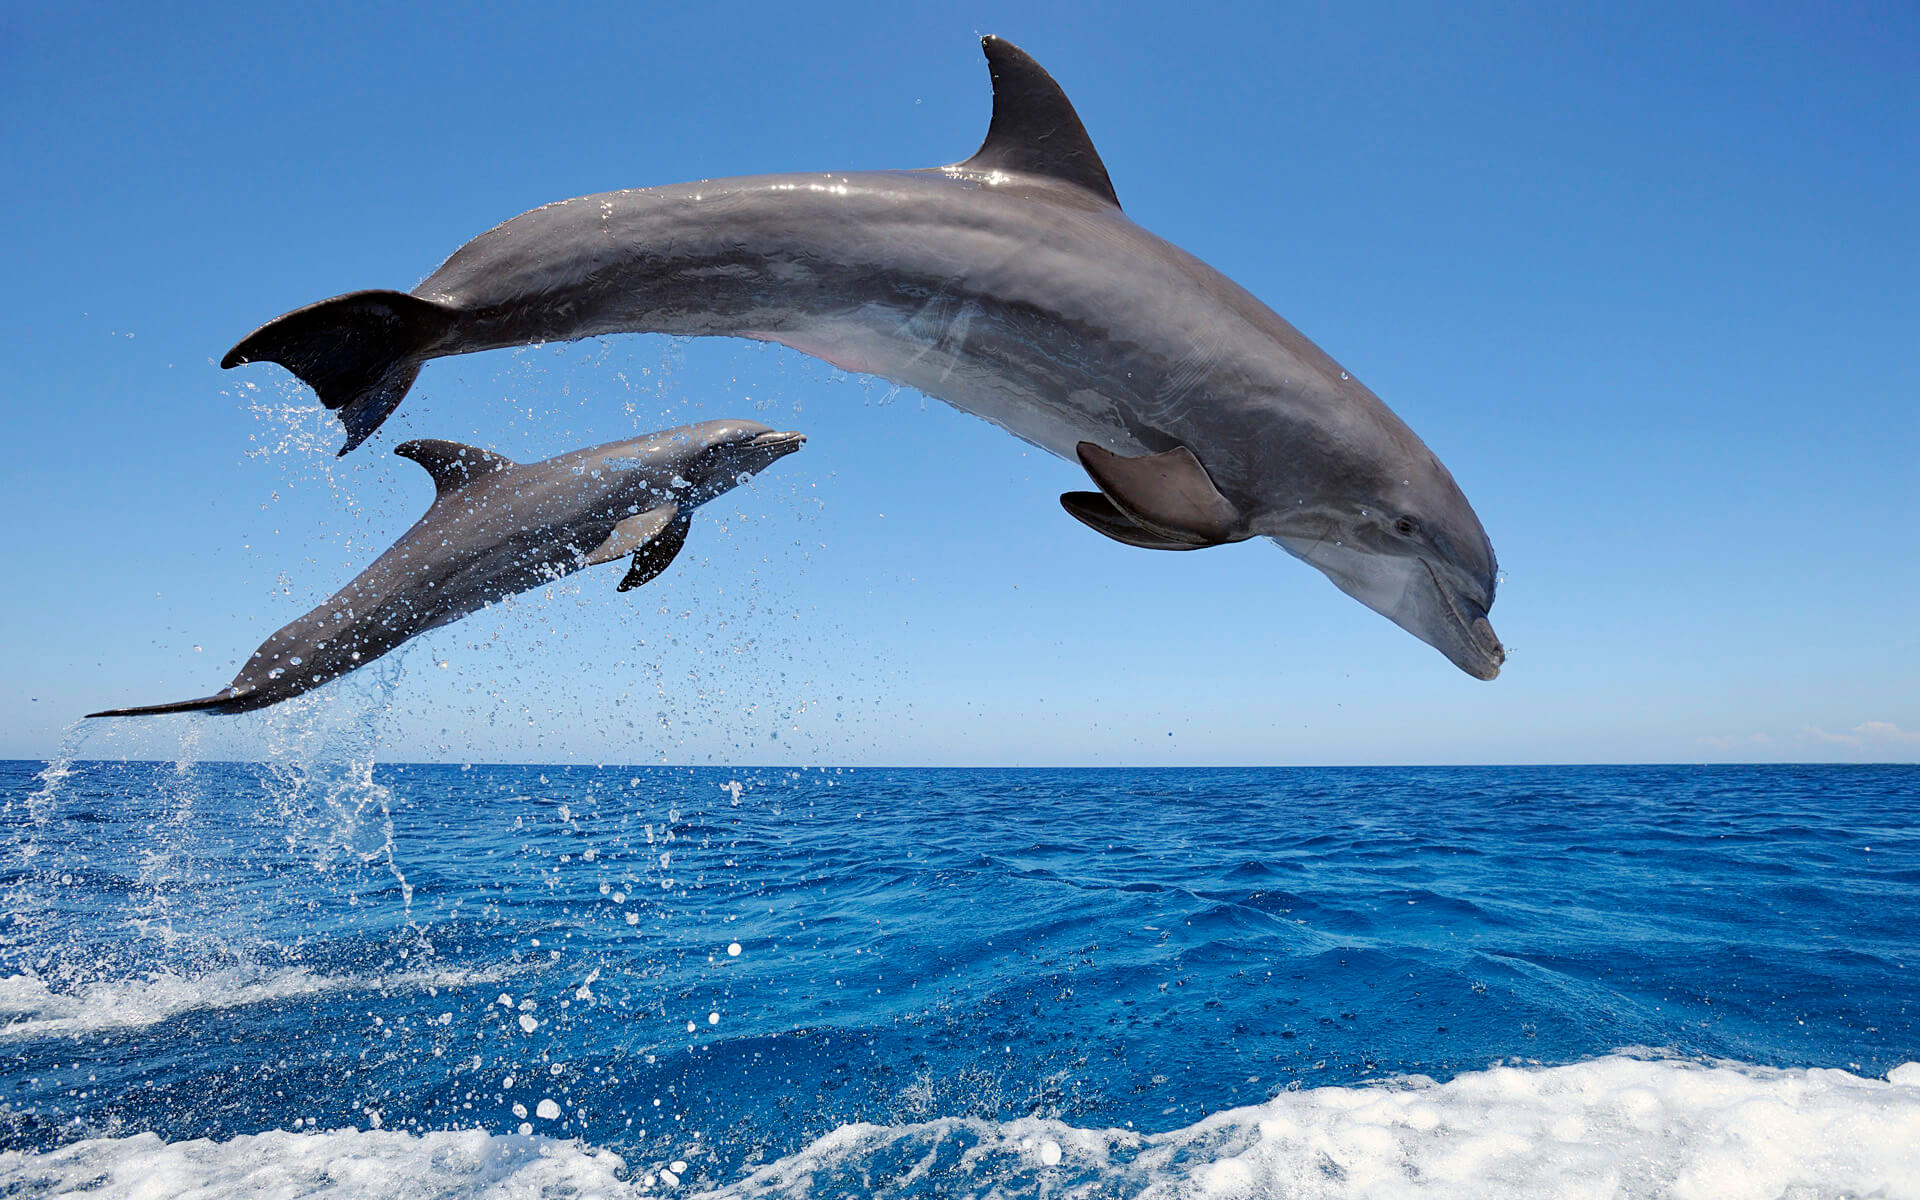 common bottlenose dolphin excursion in tenerife